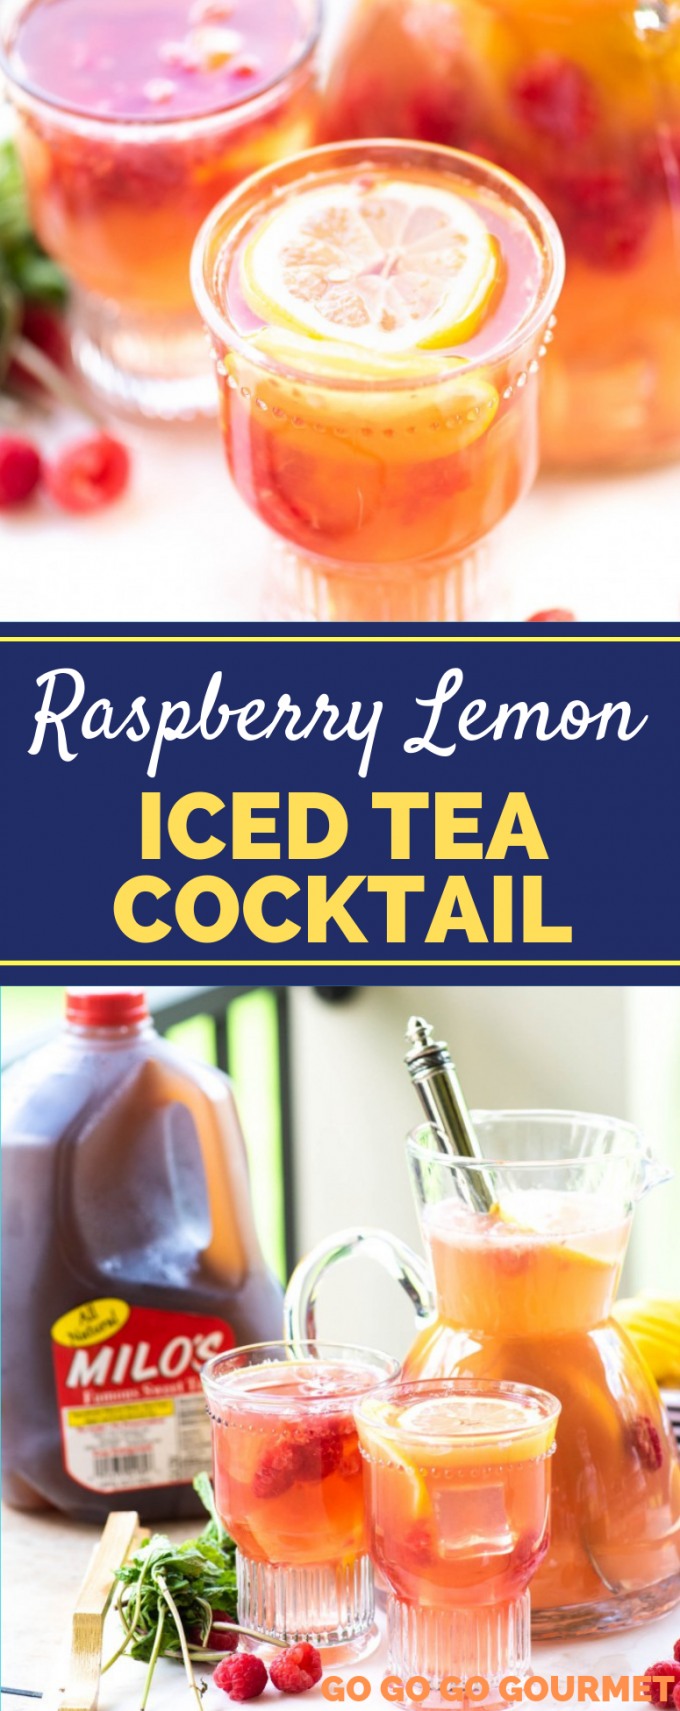 This homemade Raspberry Lemon Iced Tea Cocktail is sure to become one of your favorite summer drinks! Made with my favorite iced tea, @DrinkMilos, it's exactly what you've been searching for. You can use Milo's sweet or unsweetened tea based off of personal preference! #ad#gogogogourmet #milosmoments #raspberrylemonicedteacocktail #summercocktails #summerdrinkideas #ad via @gogogogourmet